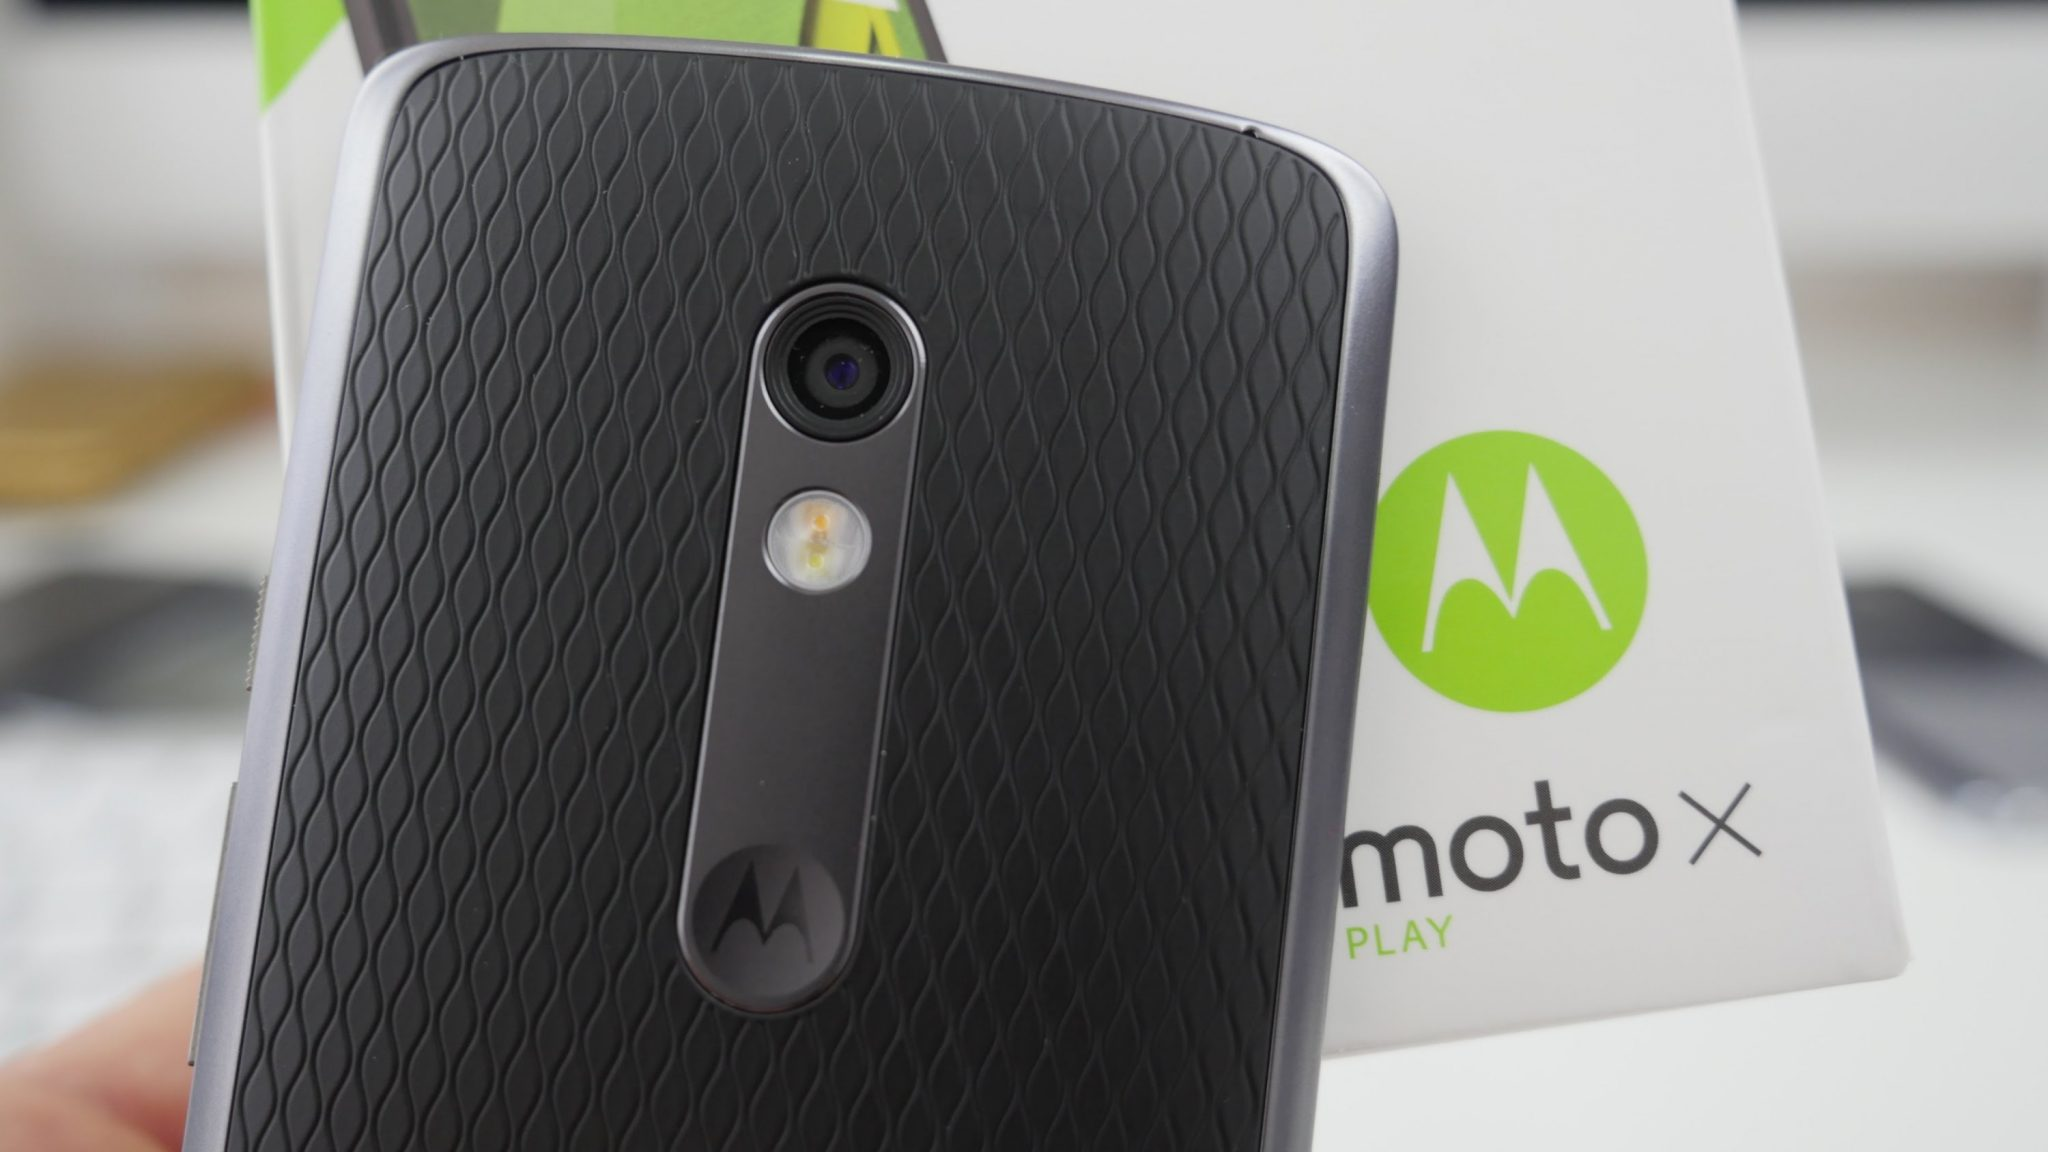 Moto X Play Gets Android 7.1.1 Nougat Update in India, Finally 1